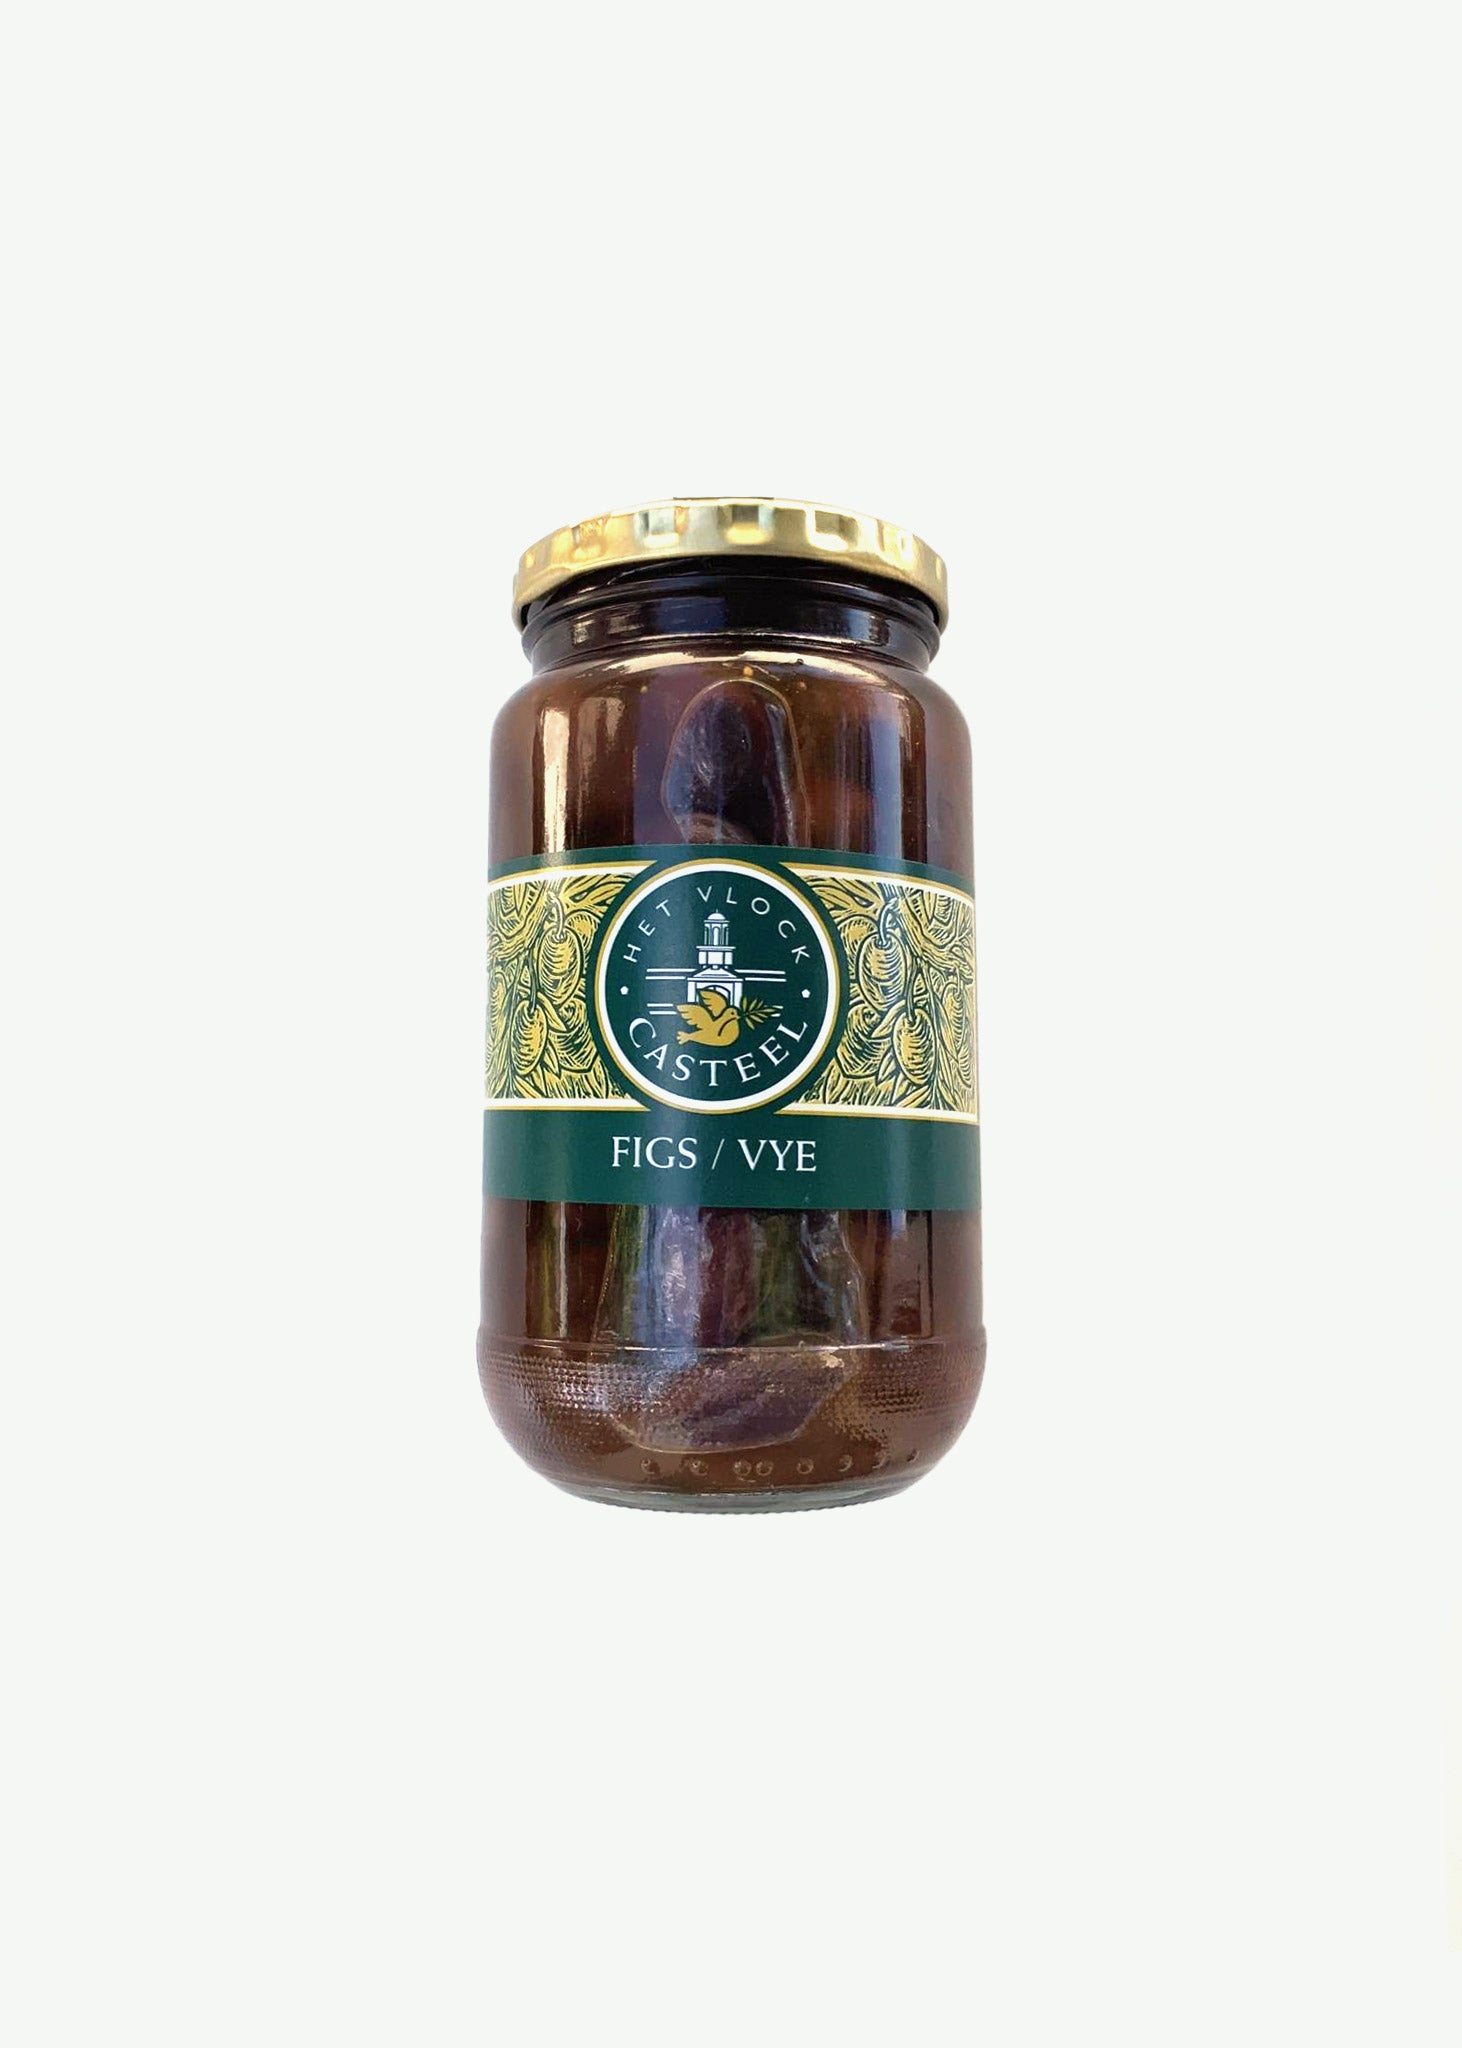 Het Vlock Casteel Fig Infused Kalamata Olives 375ml